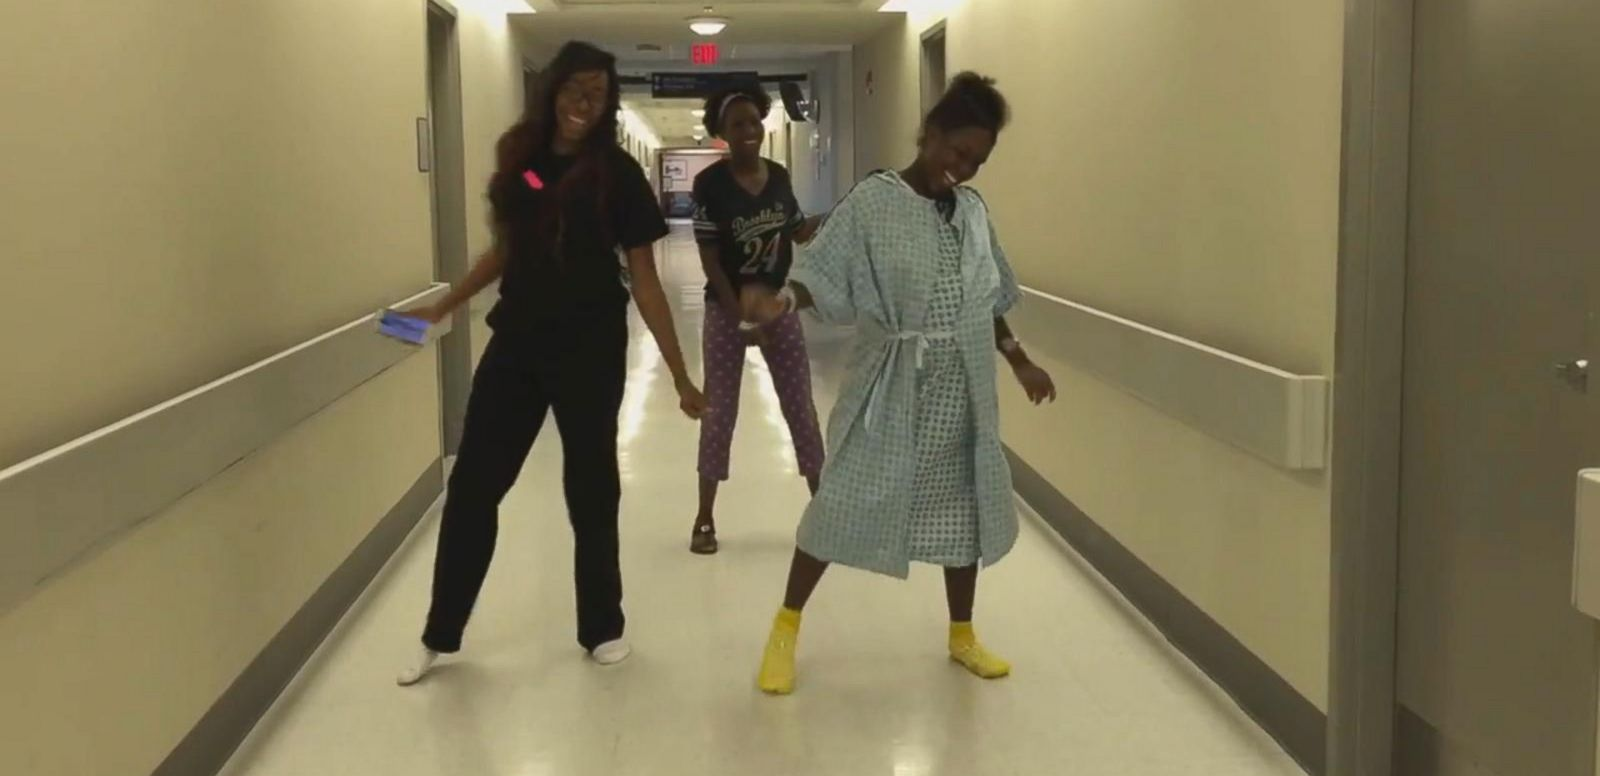 VIDEO: Pregnant Woman 'Whip Nae Naes' Between Contractions